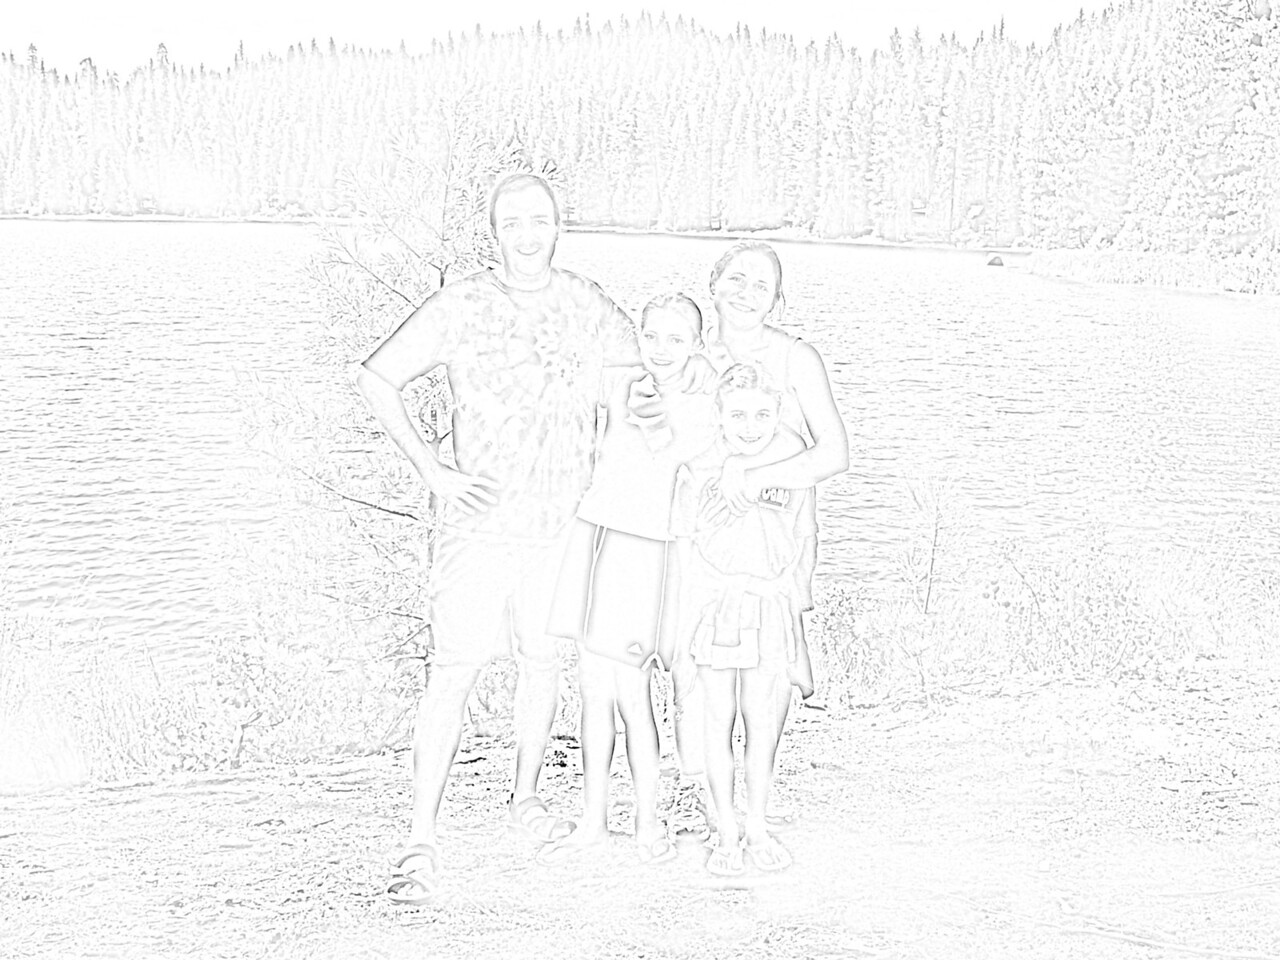 "The first step was to apply a ""photocopy"" filter to the original photograph in Photoshop. I then increased the contrast and lightened the image to create a cartoony (coloring-book) effect. I up-sampled this image to something like 45""x60"", then exported to Illustrator. I adjusted the document format to tile the image onto 40 sheets of paper, and then printed directly from Illustrator onto card stock. We then passed the pages around the family, with the instructions to be a little creative. After they were all colored (or painted, etc.), I scanned them back into Photoshop and reassembled the image."